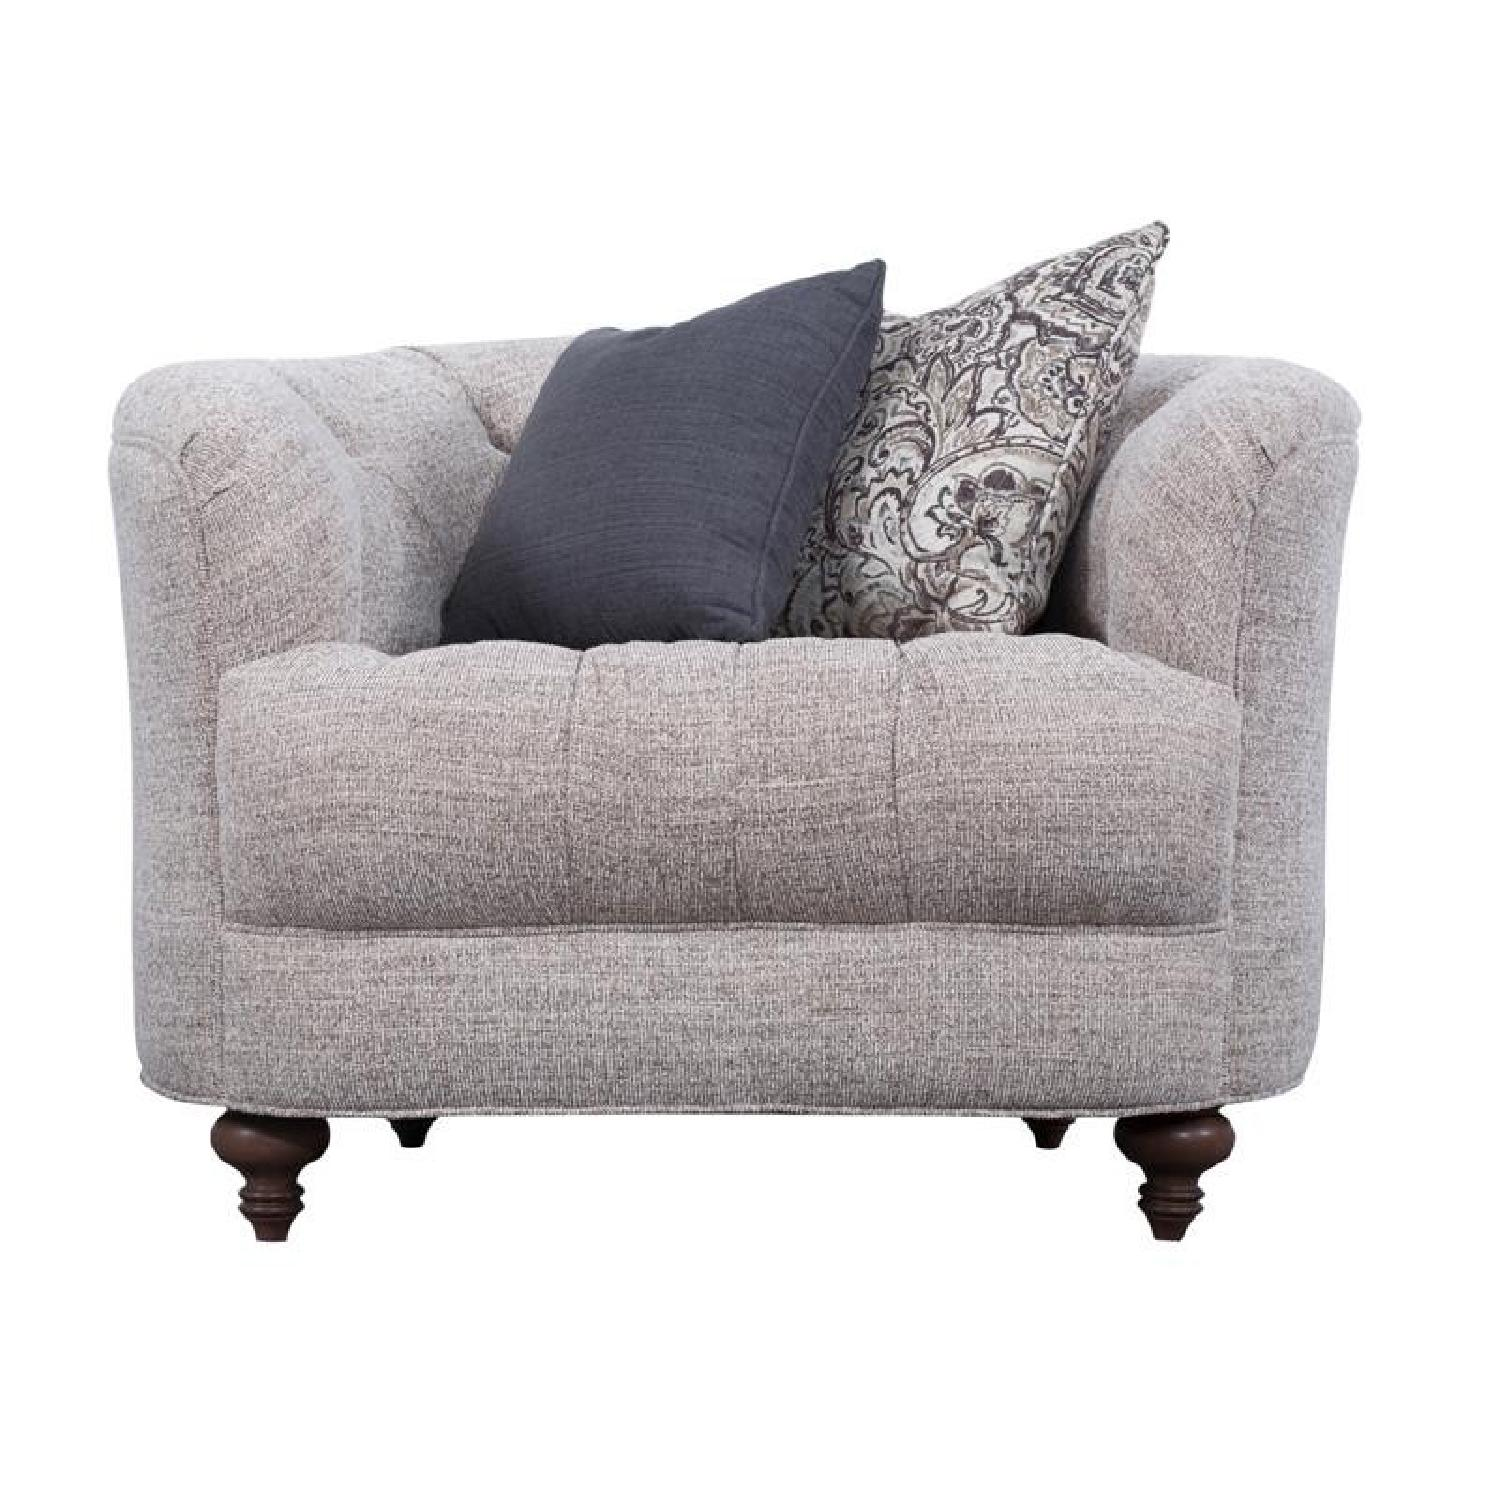 Magnussen Home Furnishings Rounded Arm Chair